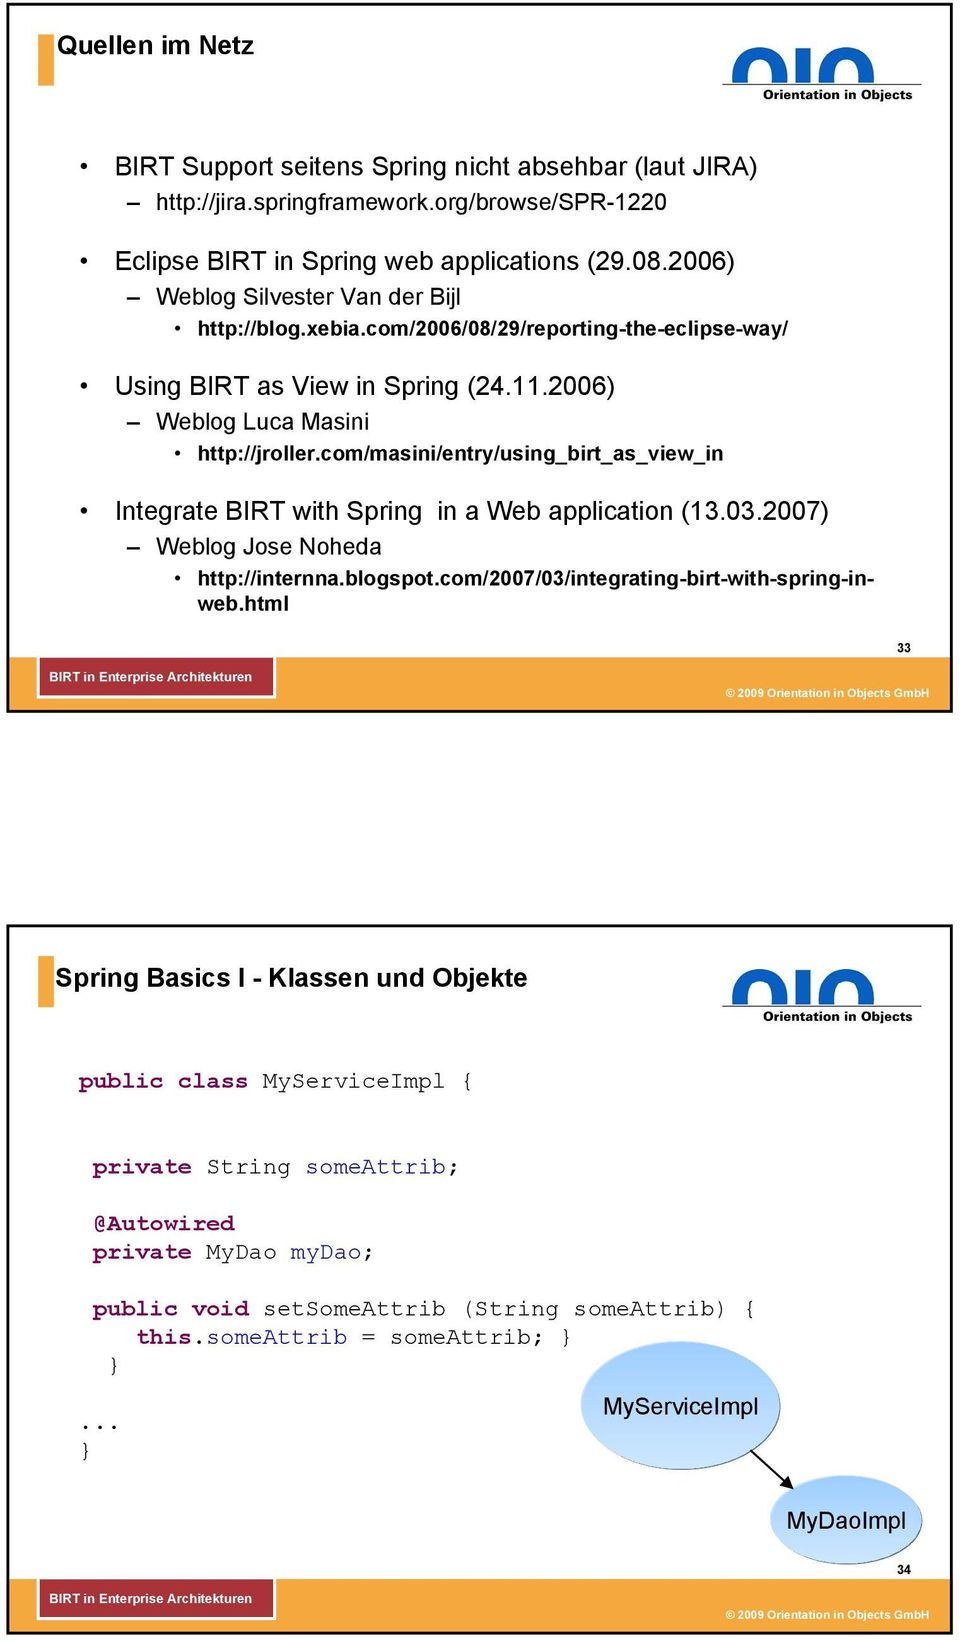 com/masini/entry/using_birt_as_view_in Integrate BIRT with Spring in a Web application (13.03.2007) Weblog Jose Noheda http://internna.blogspot.com/2007/03/integrating-birt-with-spring-inweb.